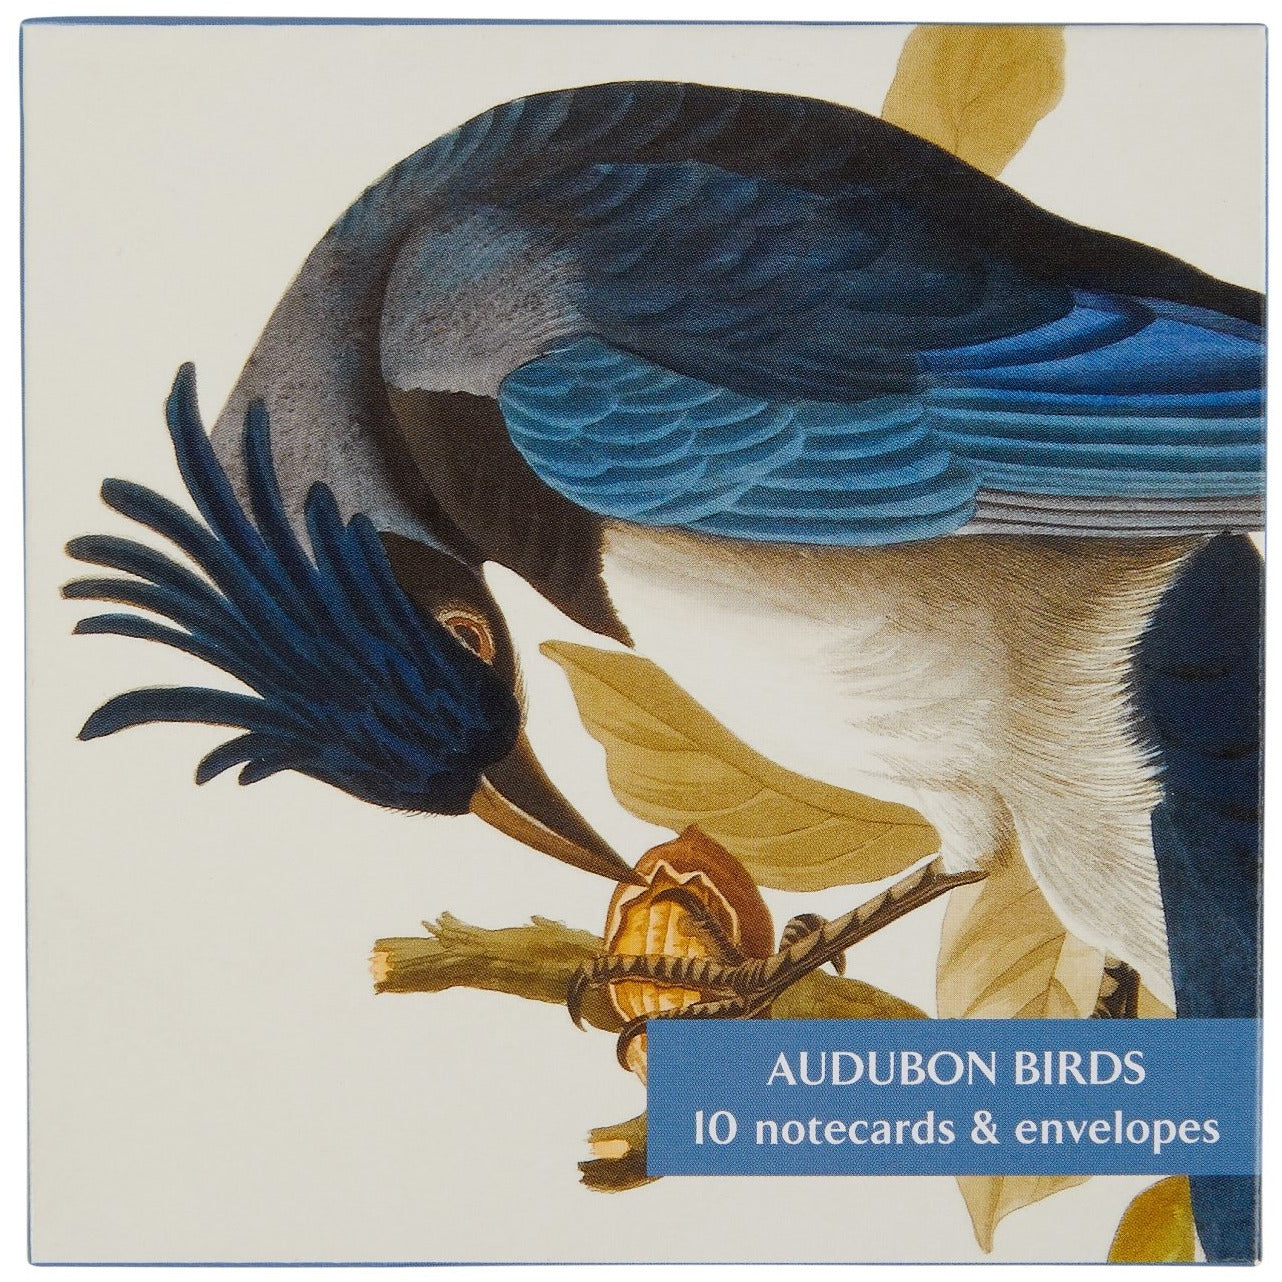 Featured image for the project: Audubon Birds - Notecard pack (small)